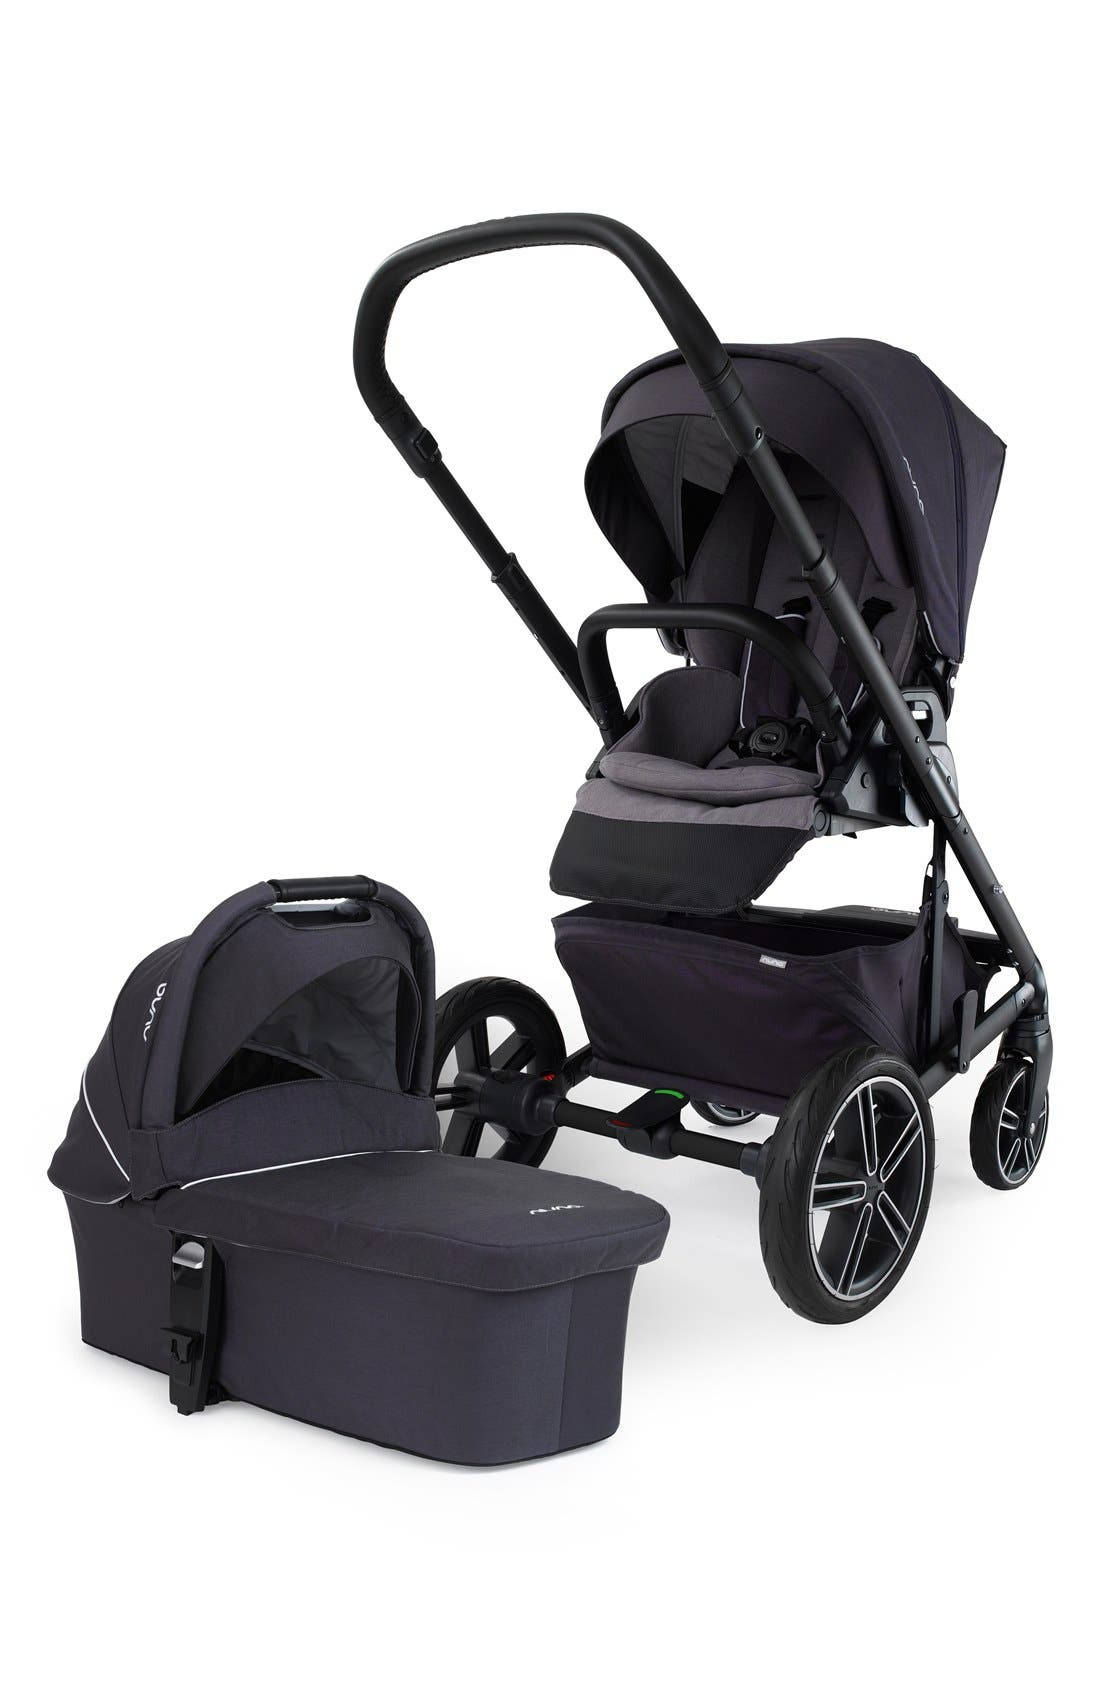 Alternate Image 1 Selected - nuna 'MIXX™' Stroller System (Stroller & Bassinet)